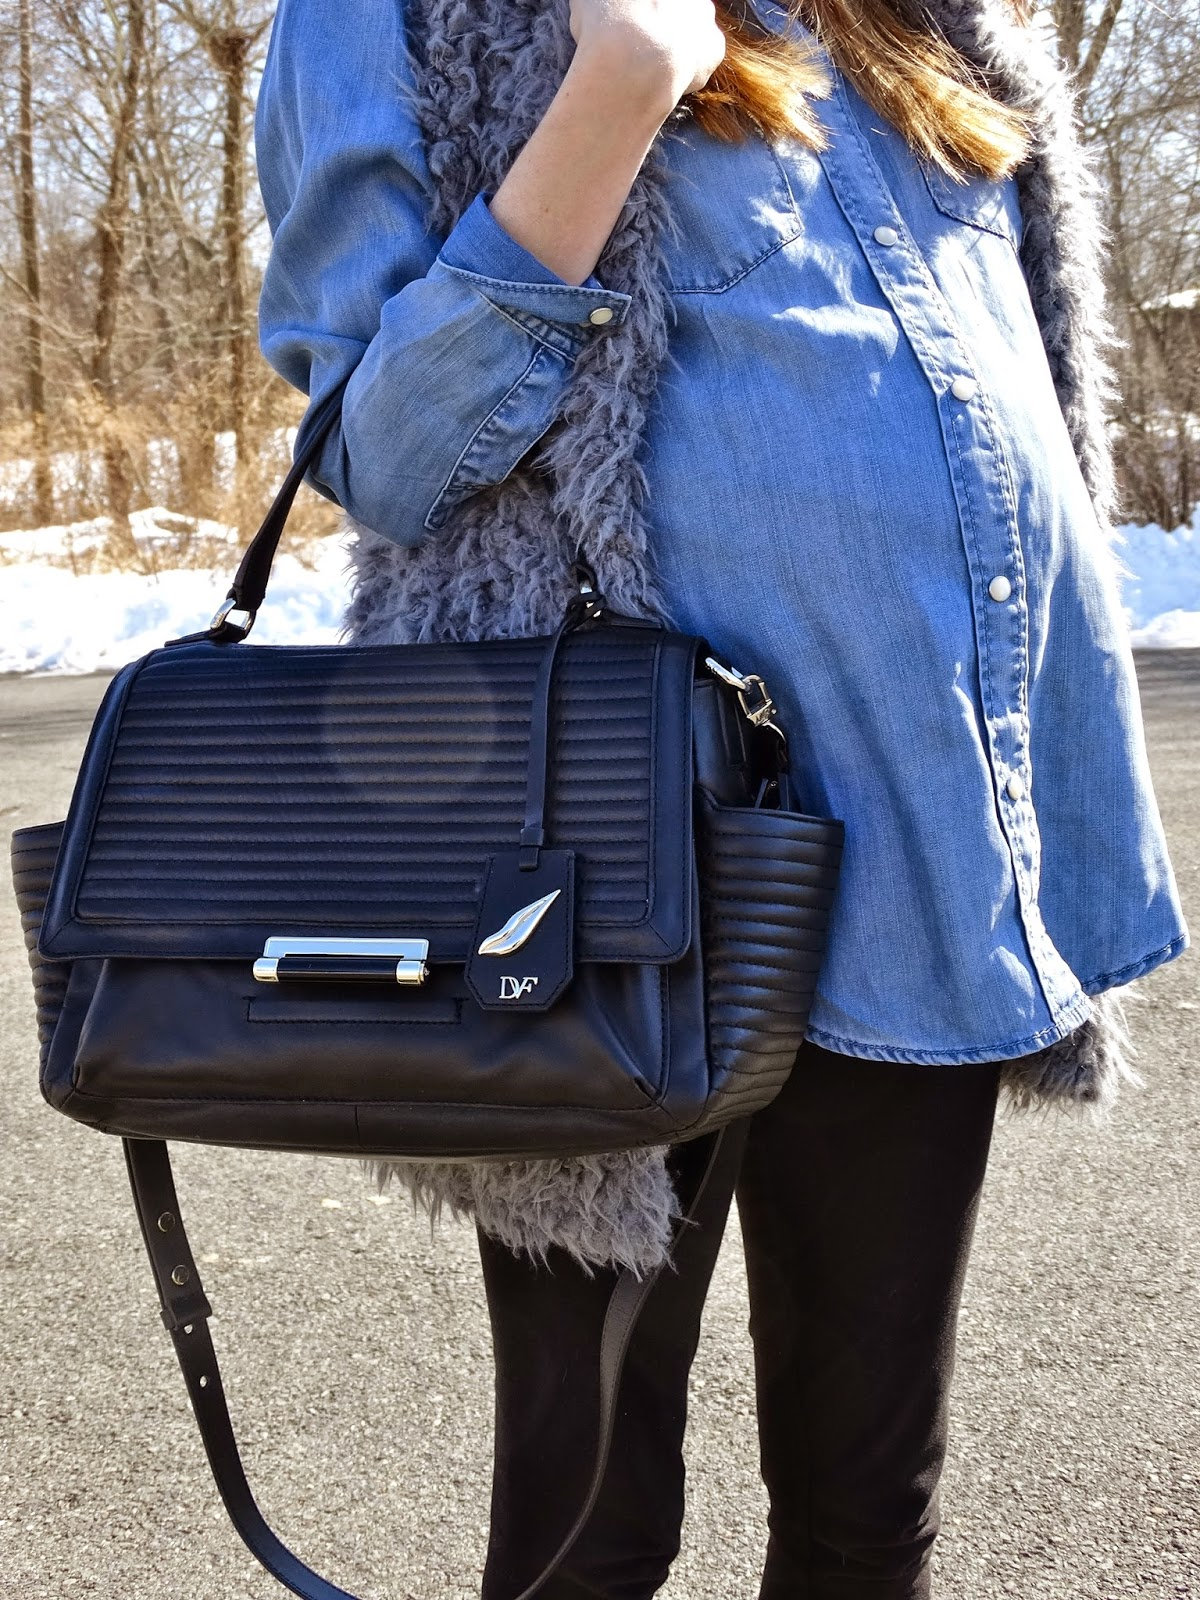 DVF 440 Courier Rail Quilted Bag, as worn by New Jersey fashion blogger House Of Jeffers | www.houseofjeffers.com